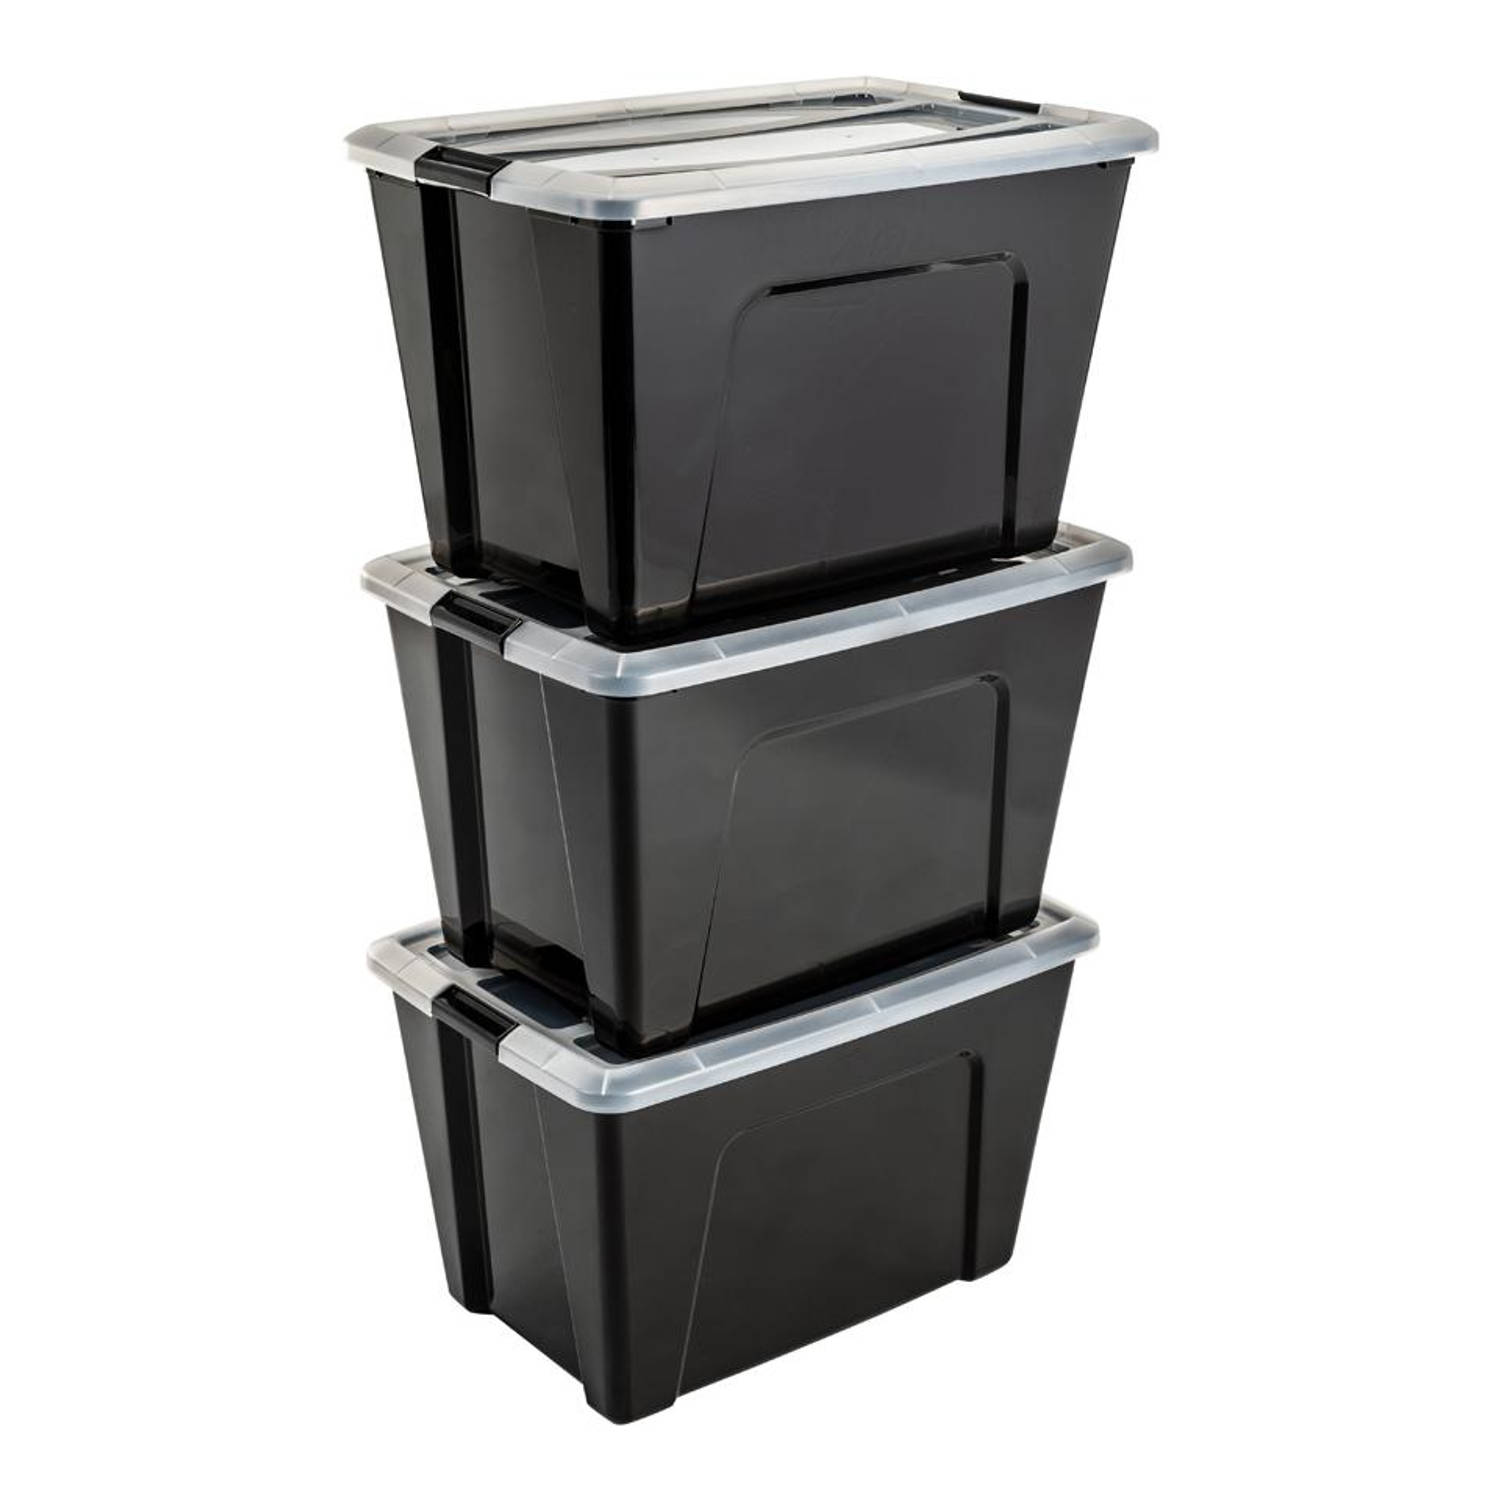 Iris Top Box opbergbox - 60 liter - transparant - set van 3